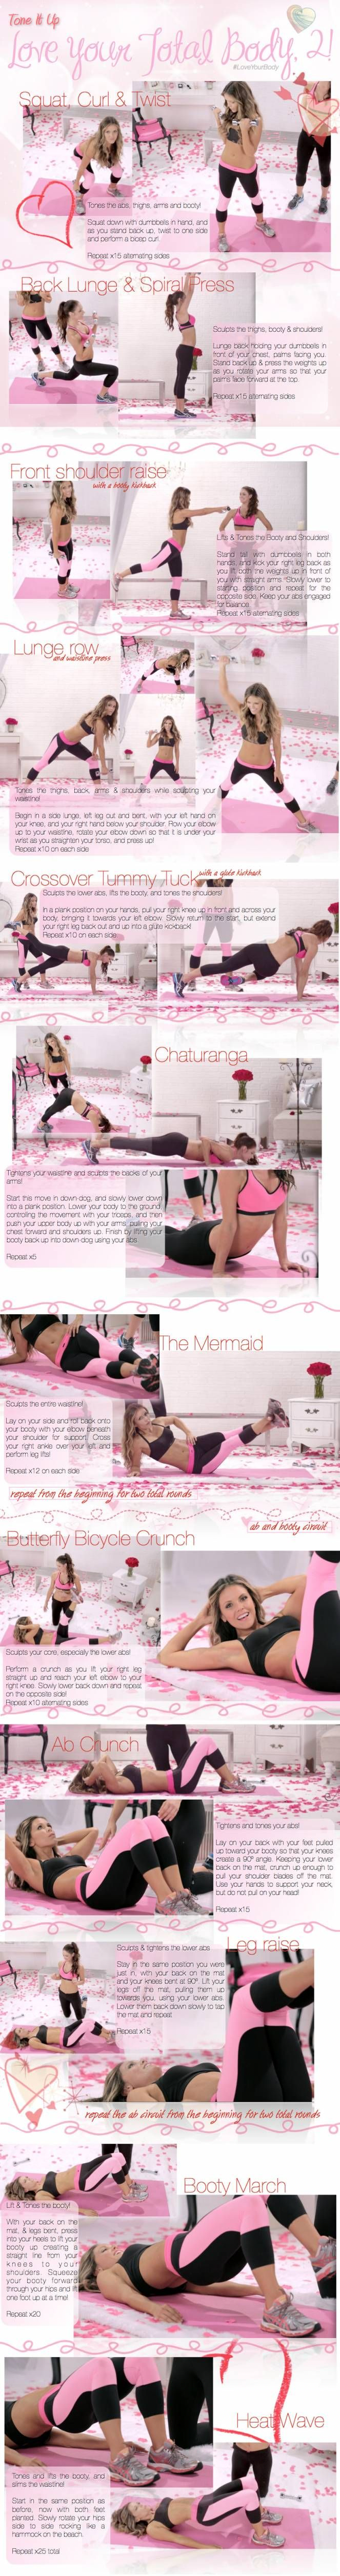 Tone it up - Love your total body #2 workout